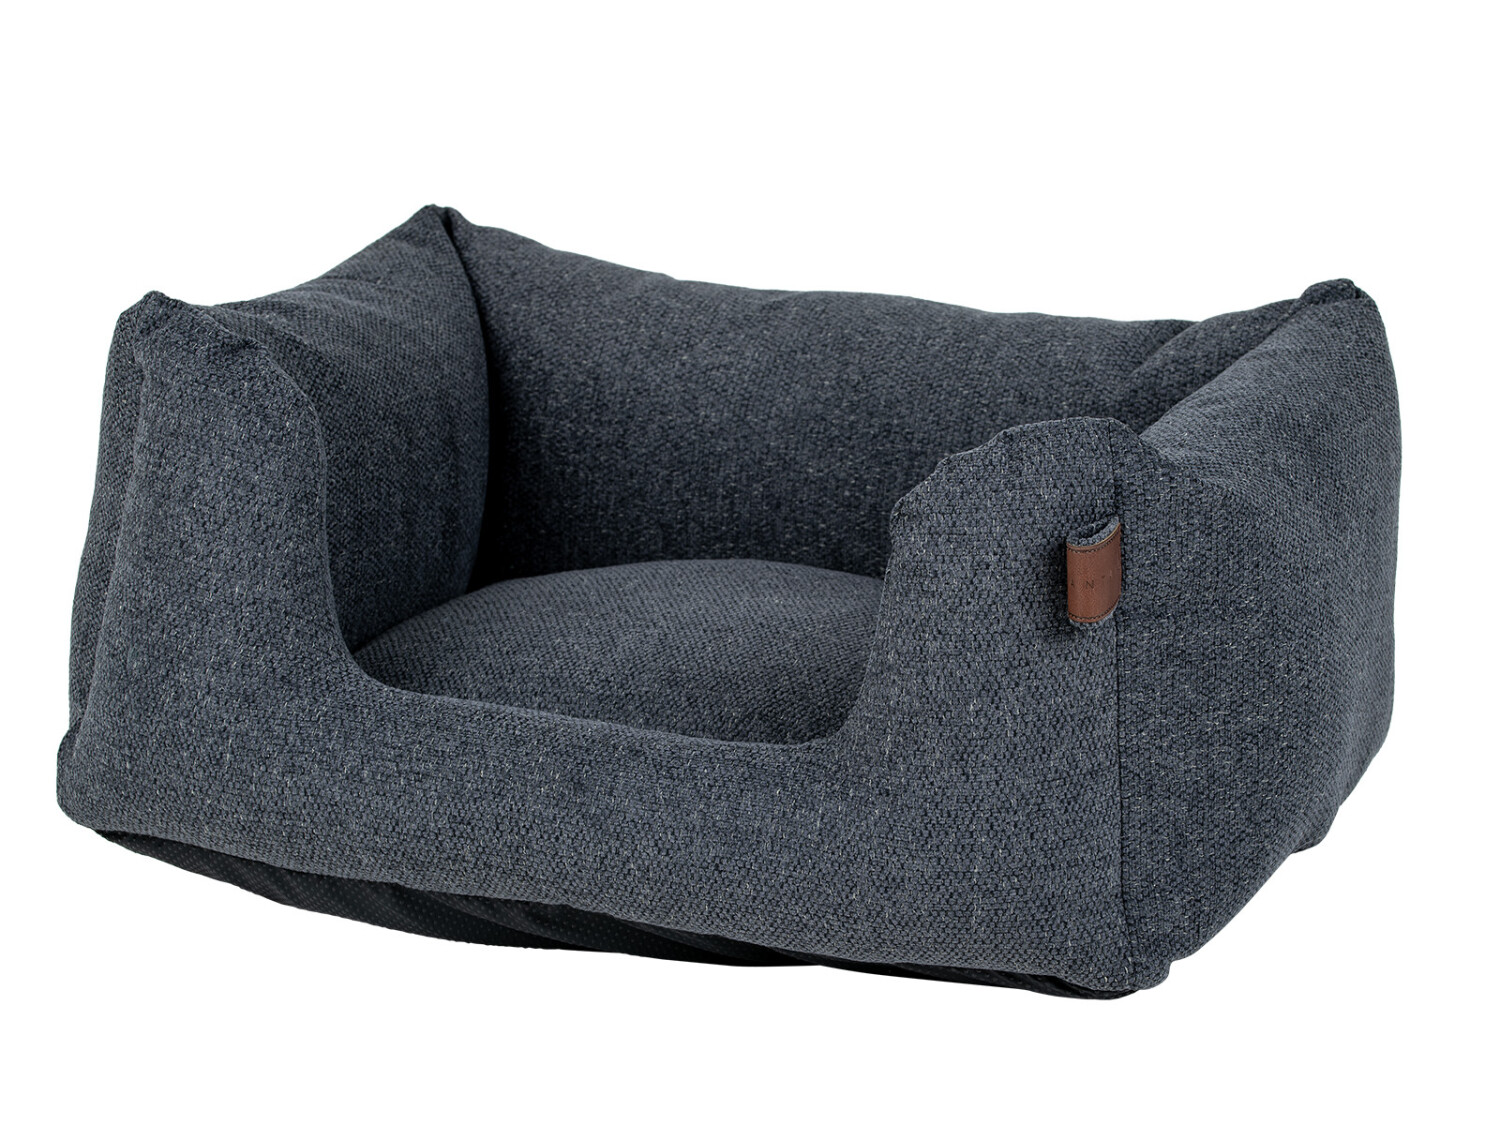 Hondenmand Fantail Snooze 60 x 50 cm Epic grey